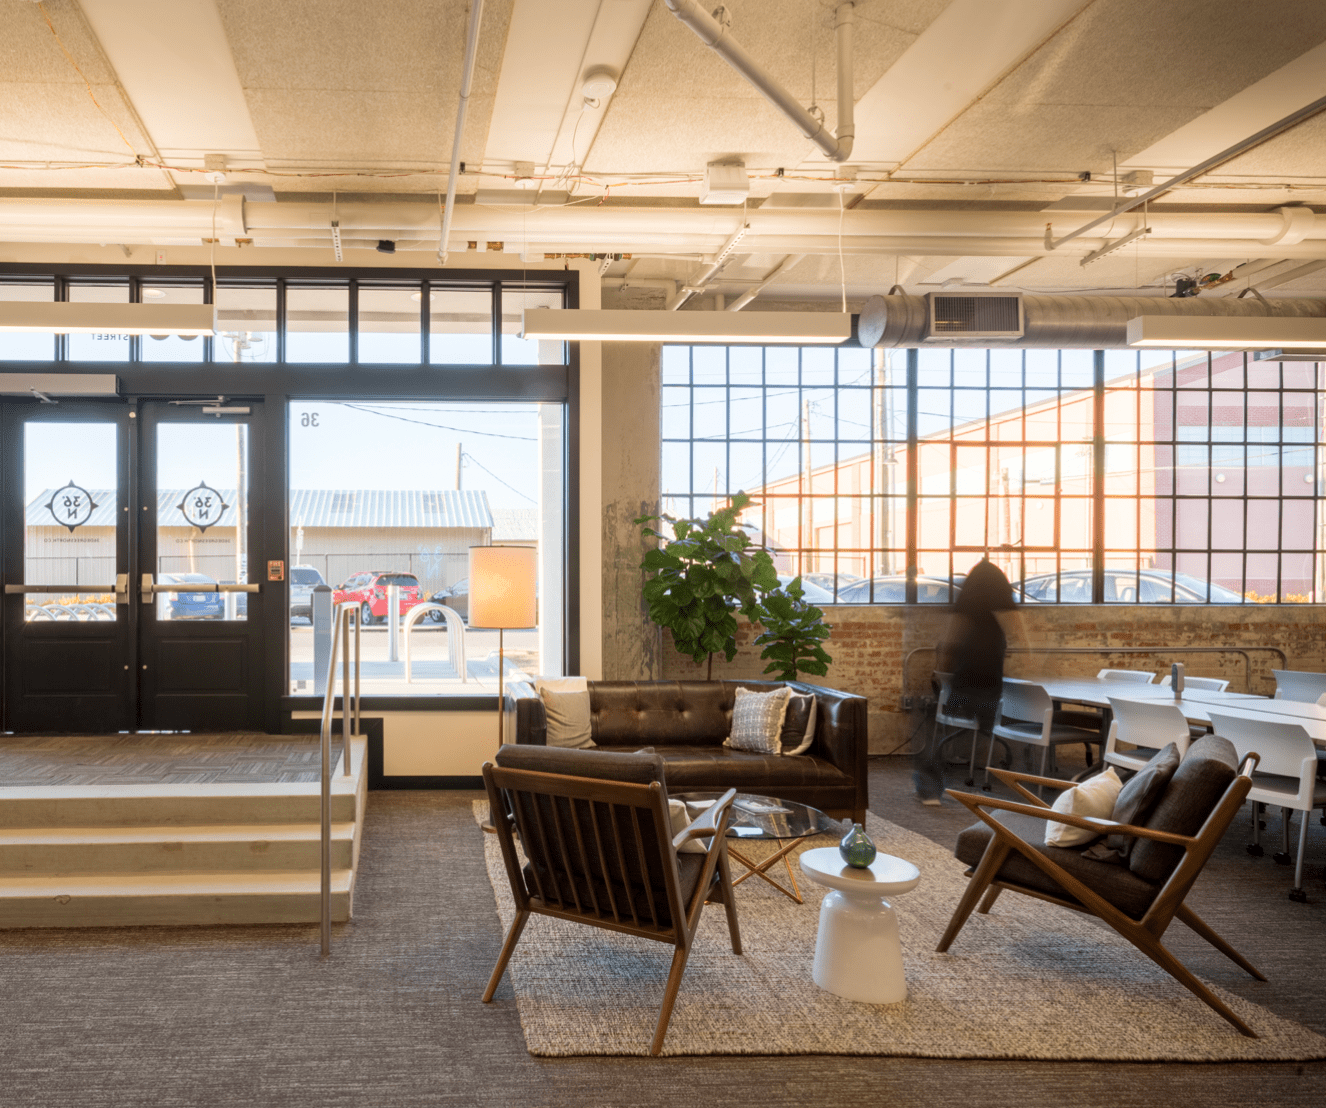 Best Modern Design Coworking Space 36 Degrees North Tulsa